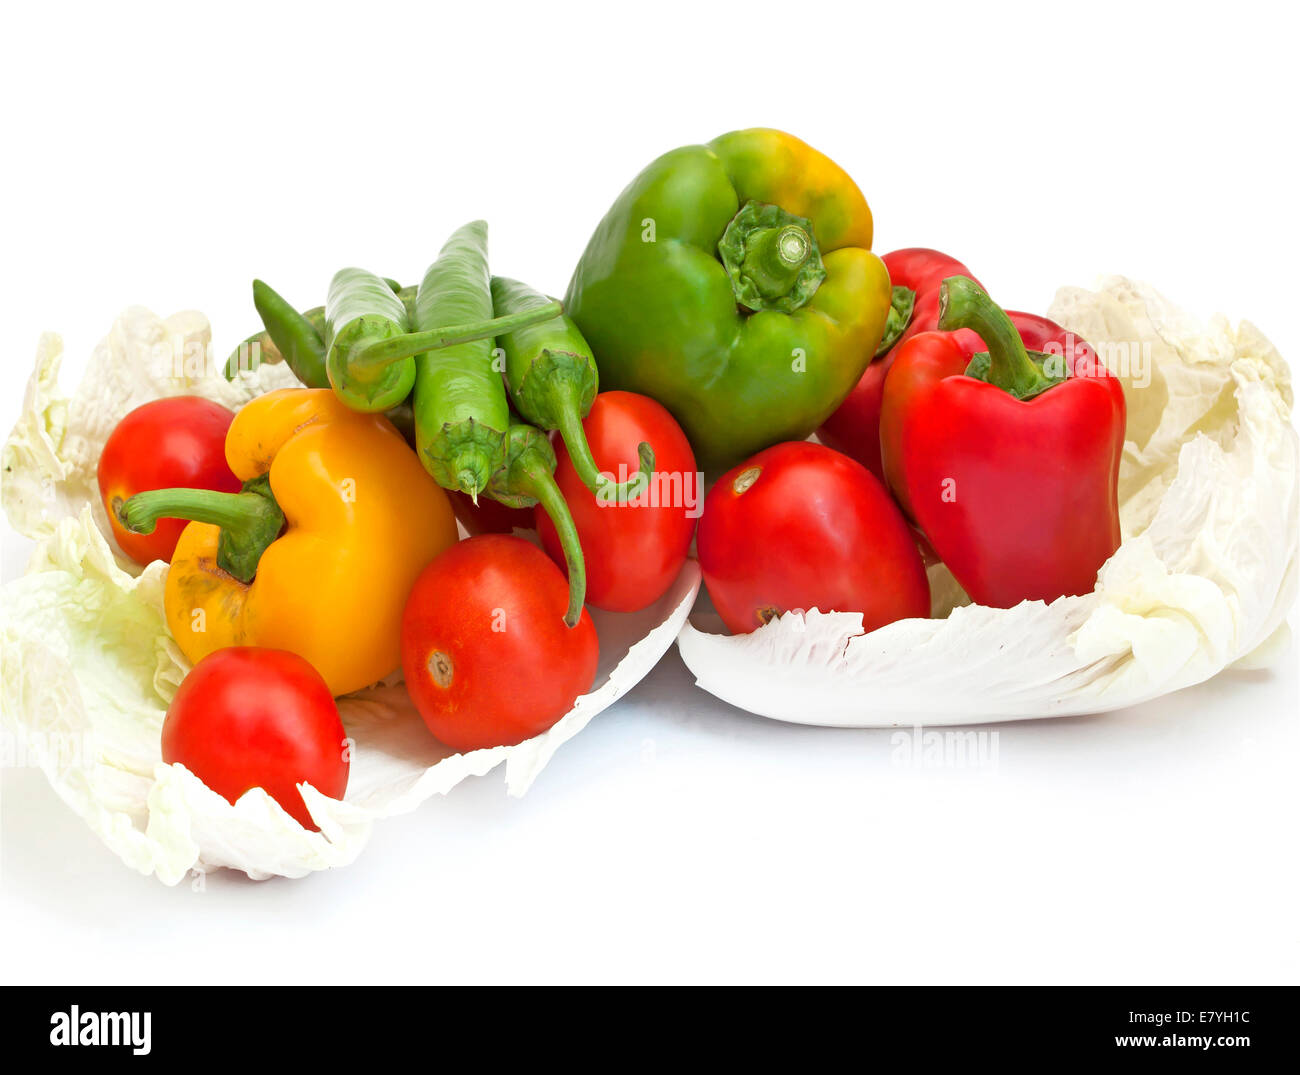 tomato plants vegetable Vegetarian chili, galangal, lemongrass - Stock Image